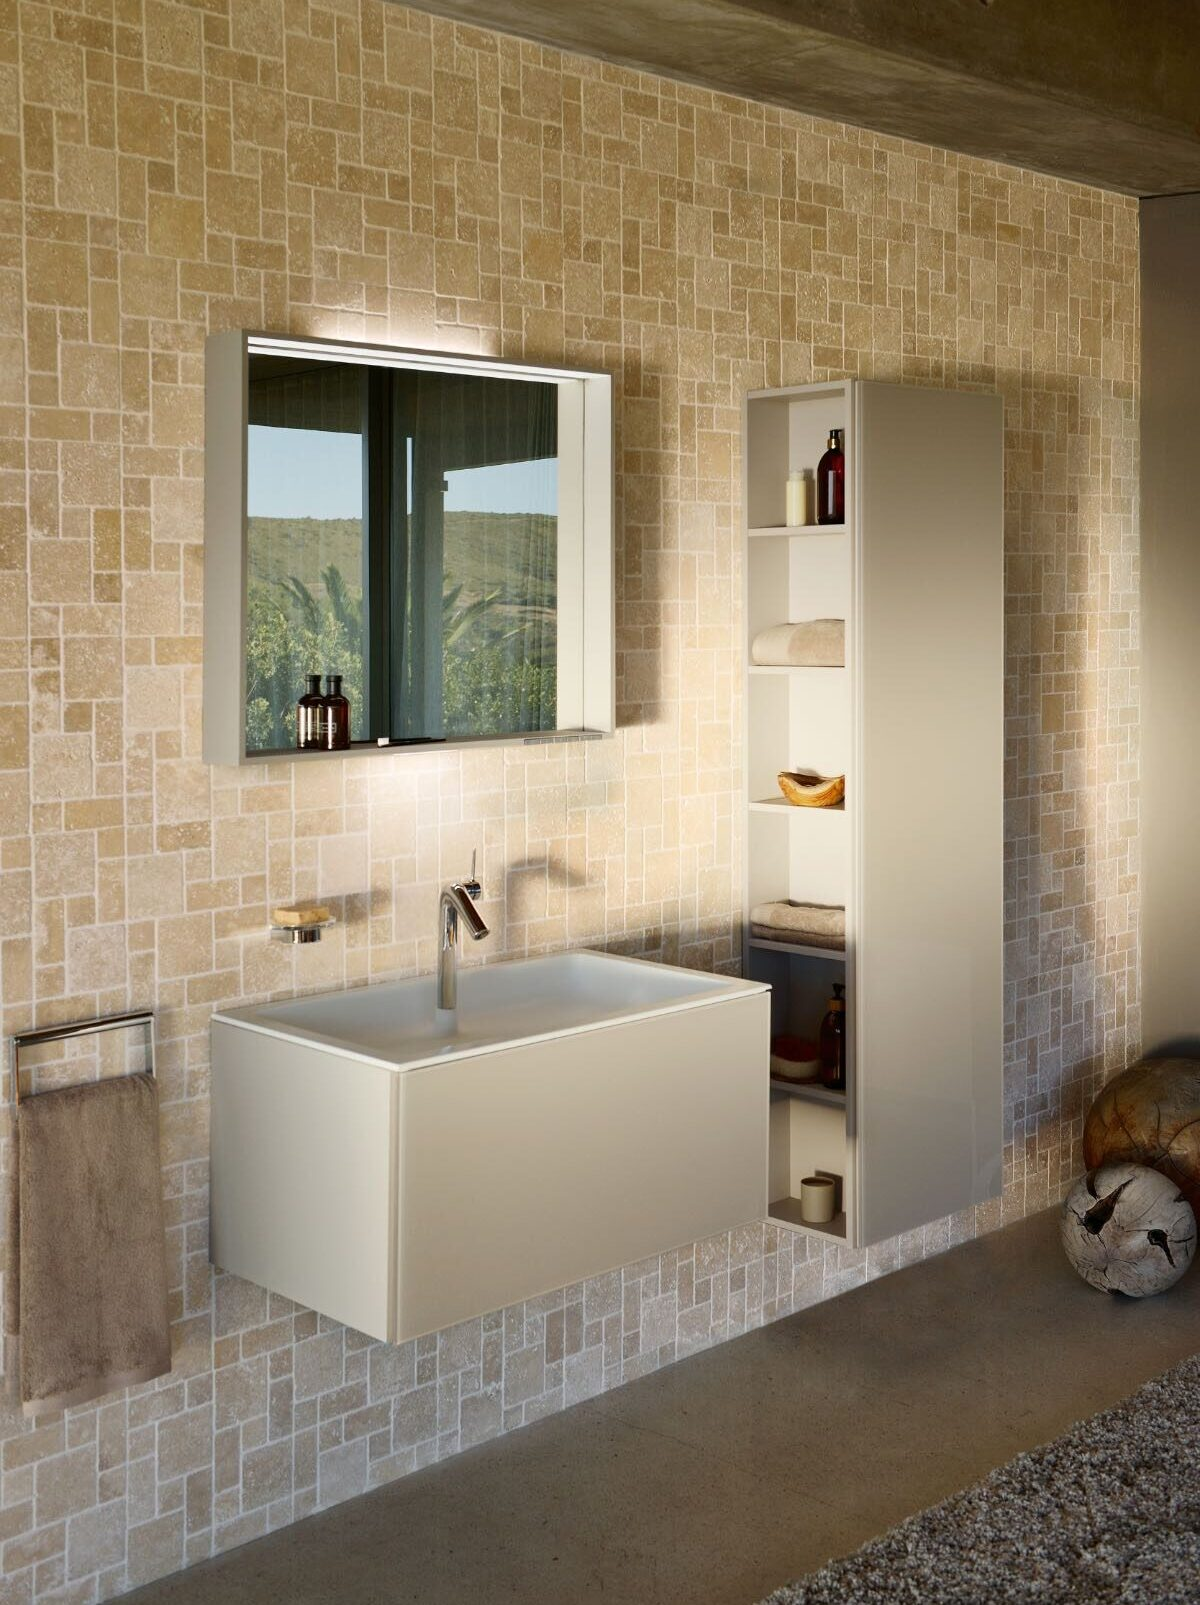 Keuco Plan Tall Cabinet with Open Shelving Colour reference 2